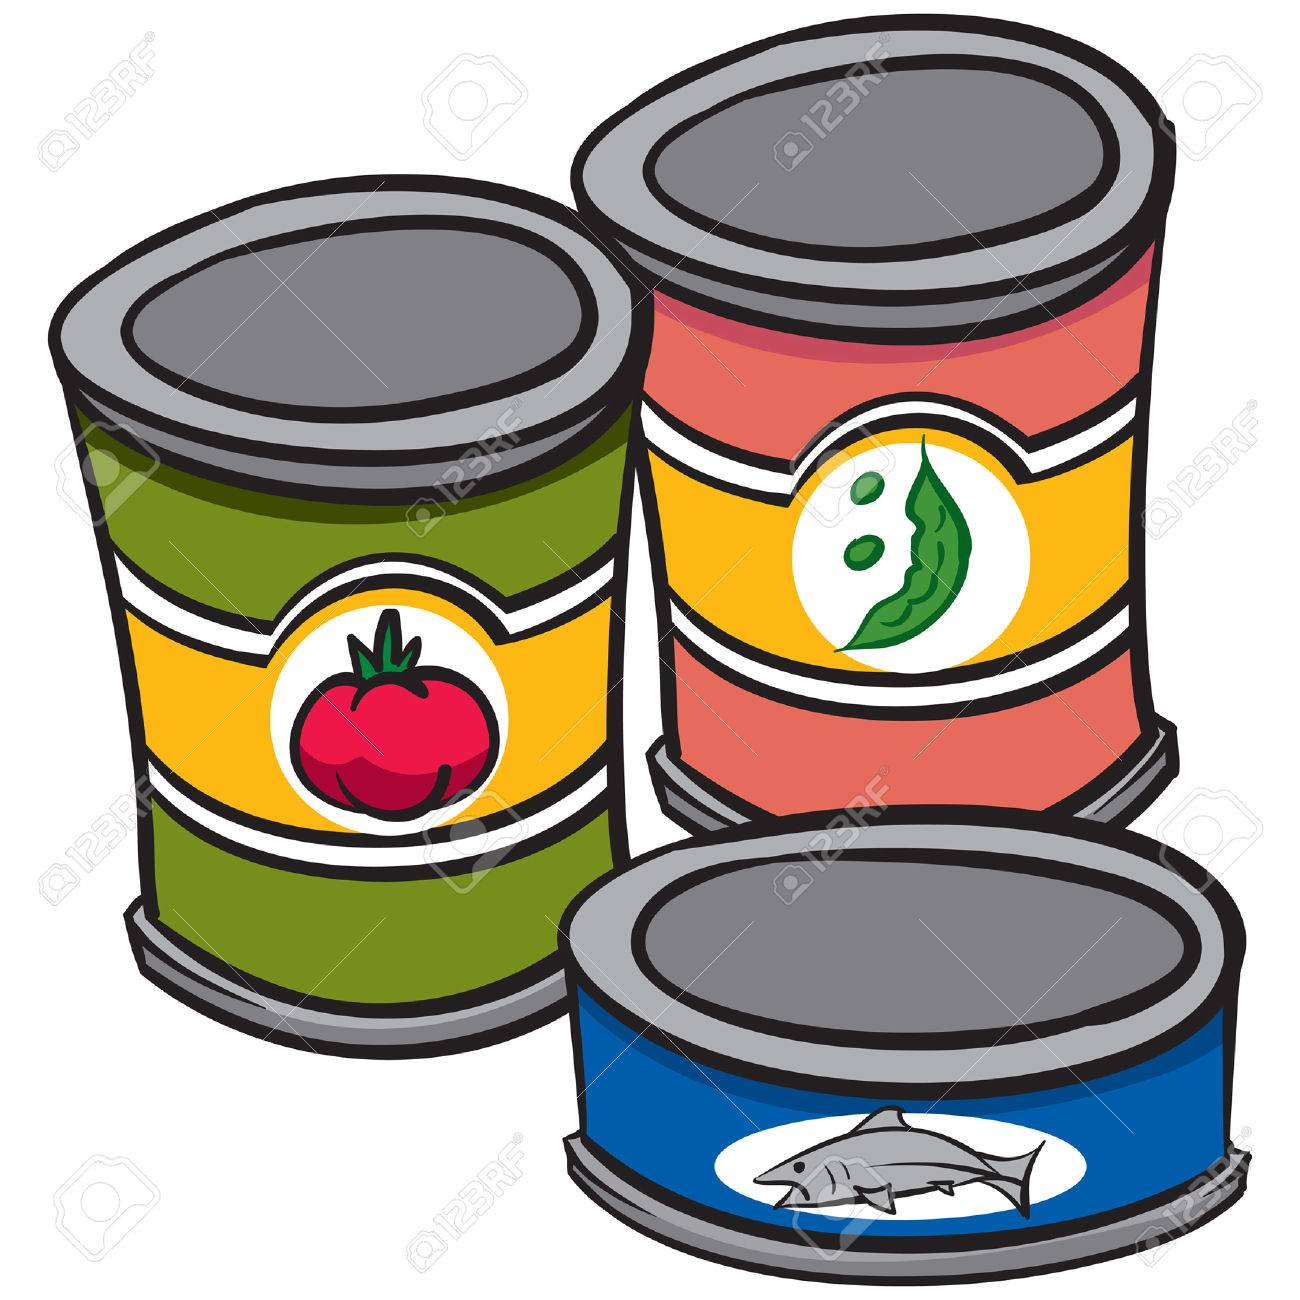 An Illustration Of Three Cans Of Food Royalty Free Cliparts Vectors